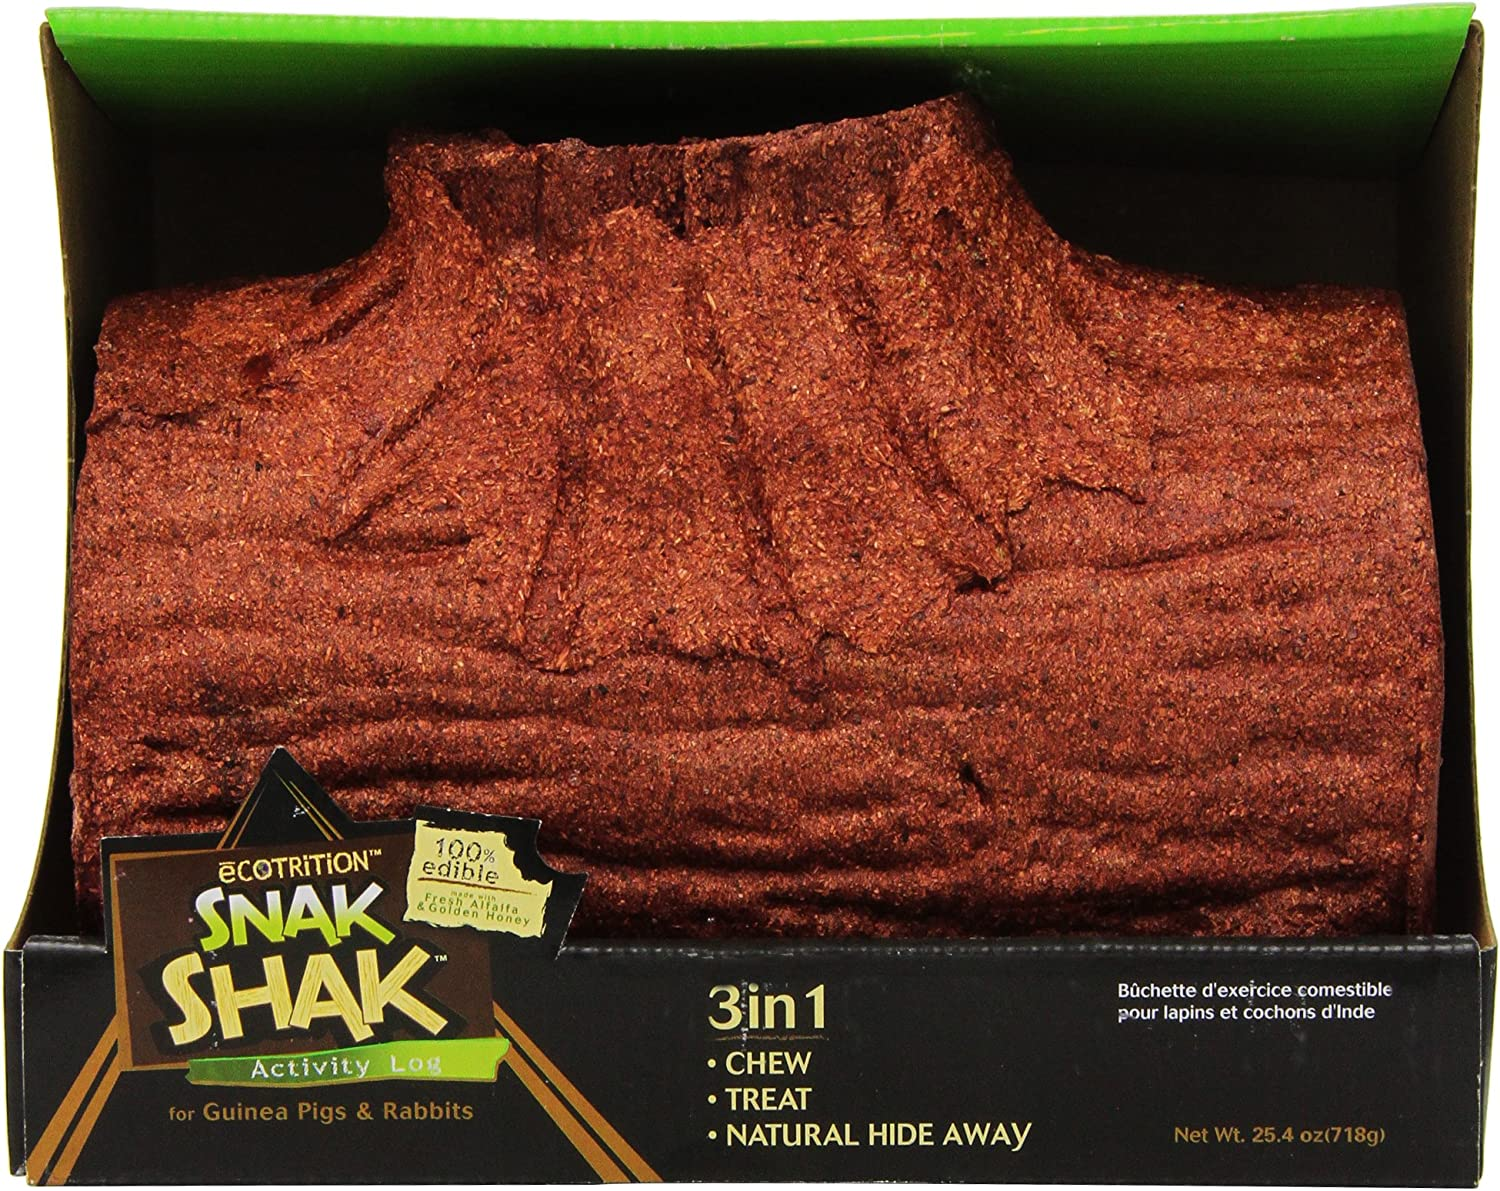 Ecotrition Snak Shak Large Activity Log For Guinea Pigs And Rabbits